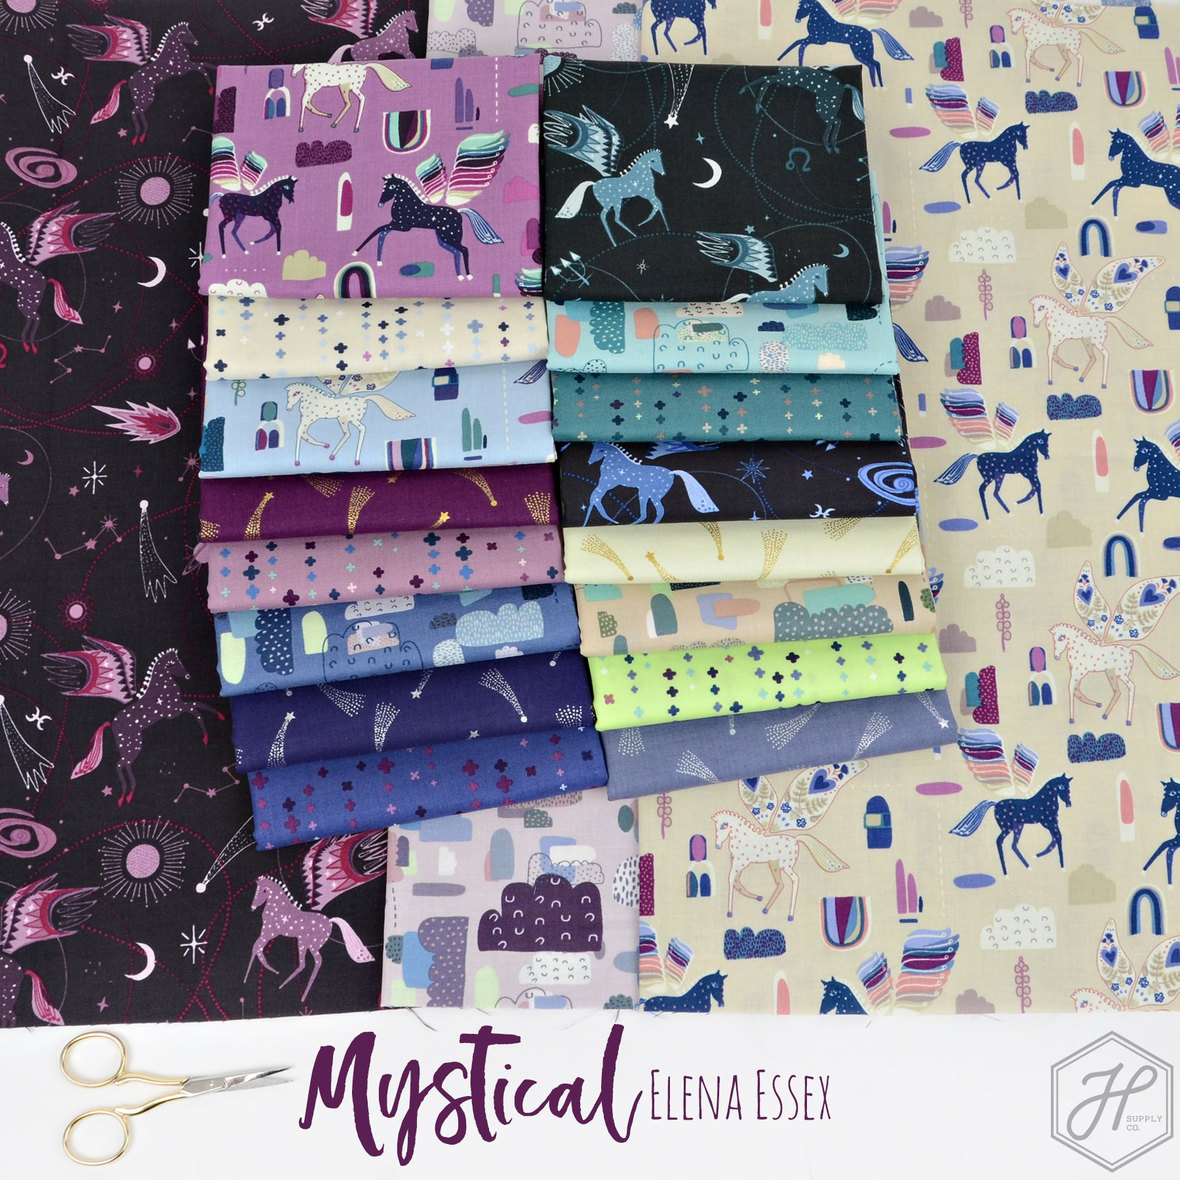 Mystical-Fabric-Elena-Essex-for-Cotton-and-Steel-fabric-at-Hawthorne-Supply-Co